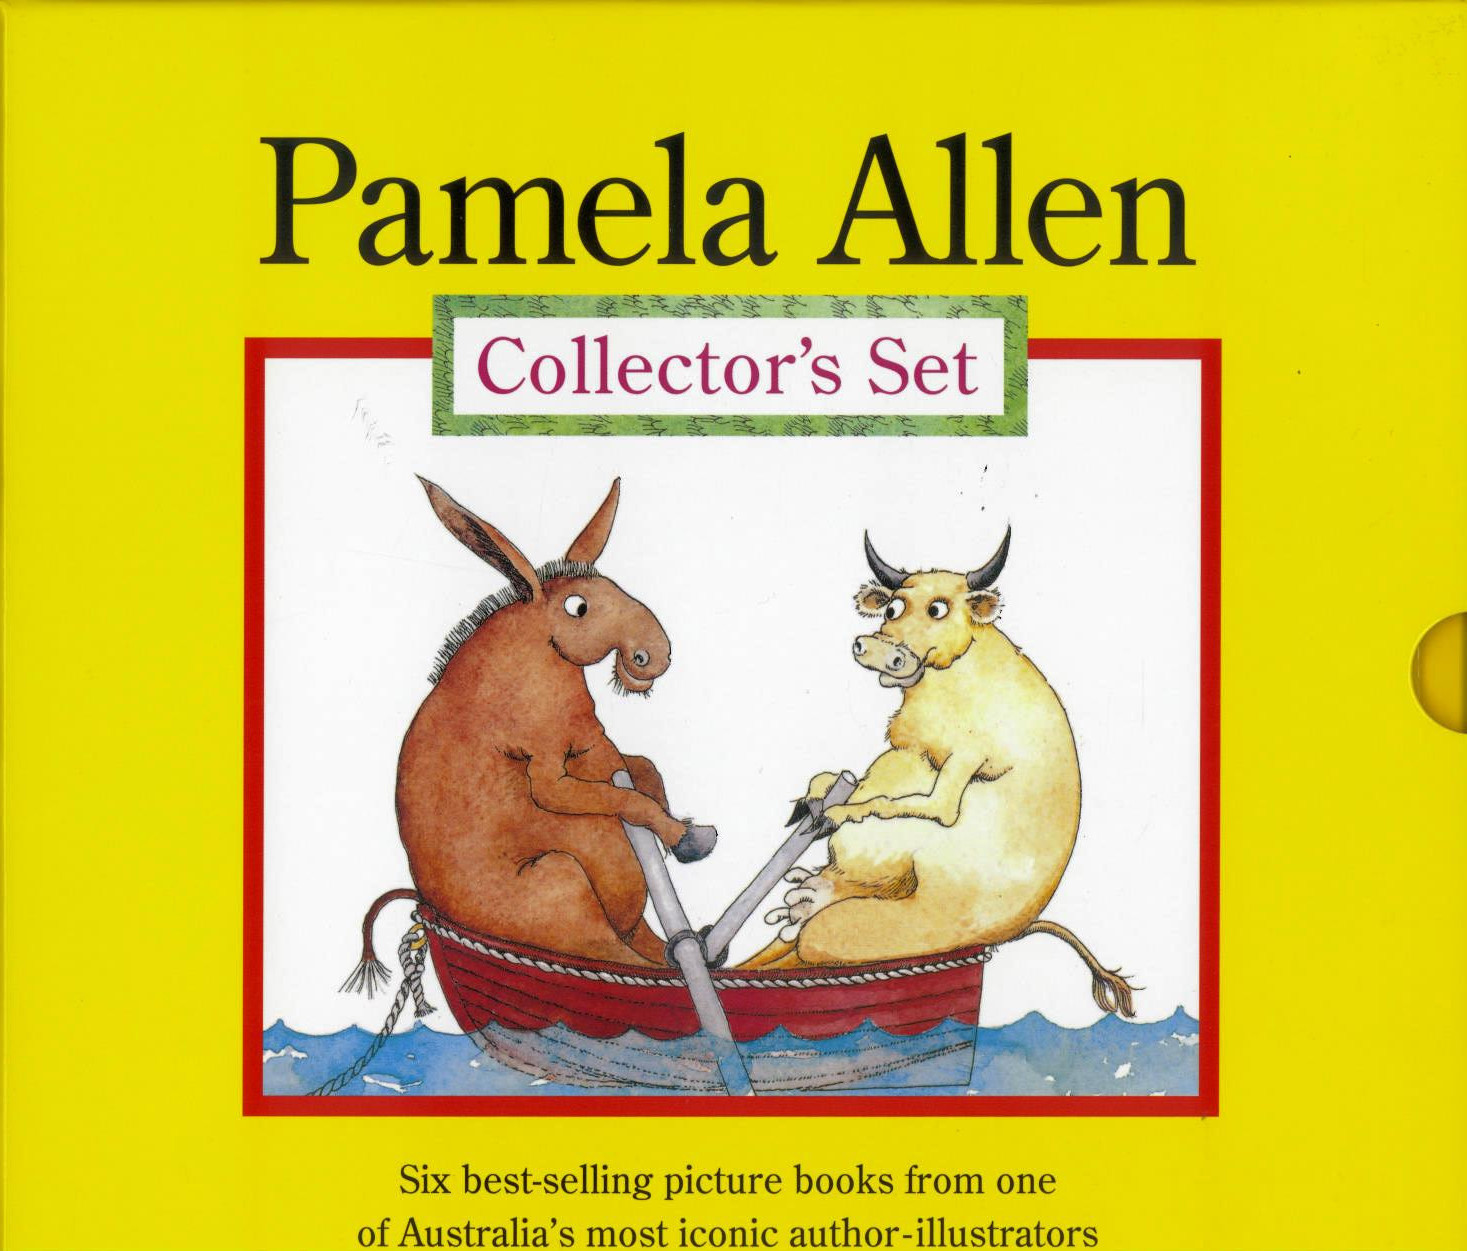 Pamela Allen Collector's Set